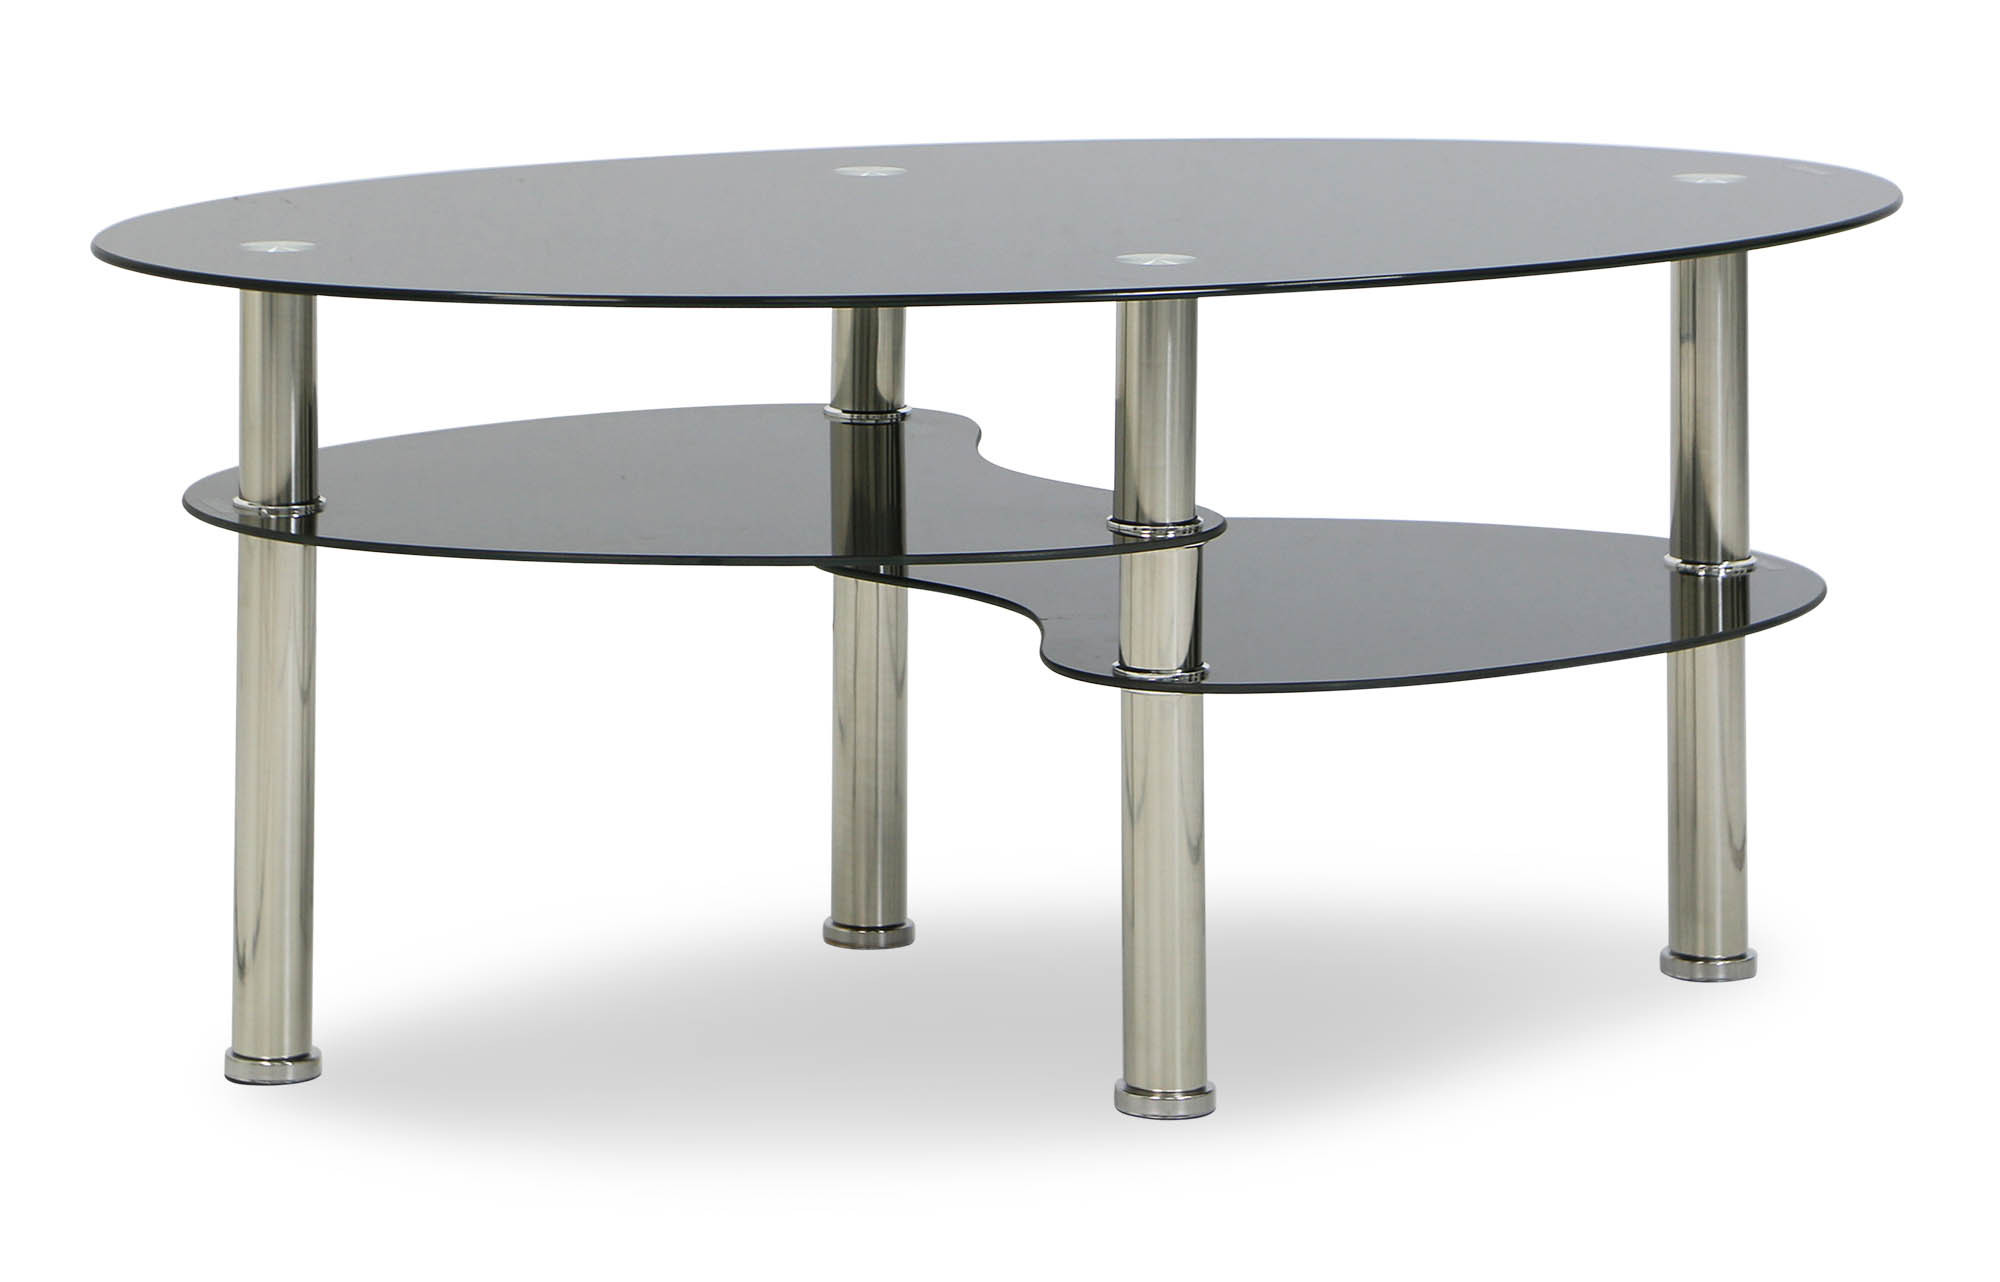 Krystal Eclipse Black Tempered Glass Coffee Table. Built In Desk Bookcase. Metal Dining Table. Antique Executive Desks. Table Lamps For Bedrooms. Techni Computer Desk. Scented Drawer Sheets. White Plastic Storage Drawers. Easter Table Runners